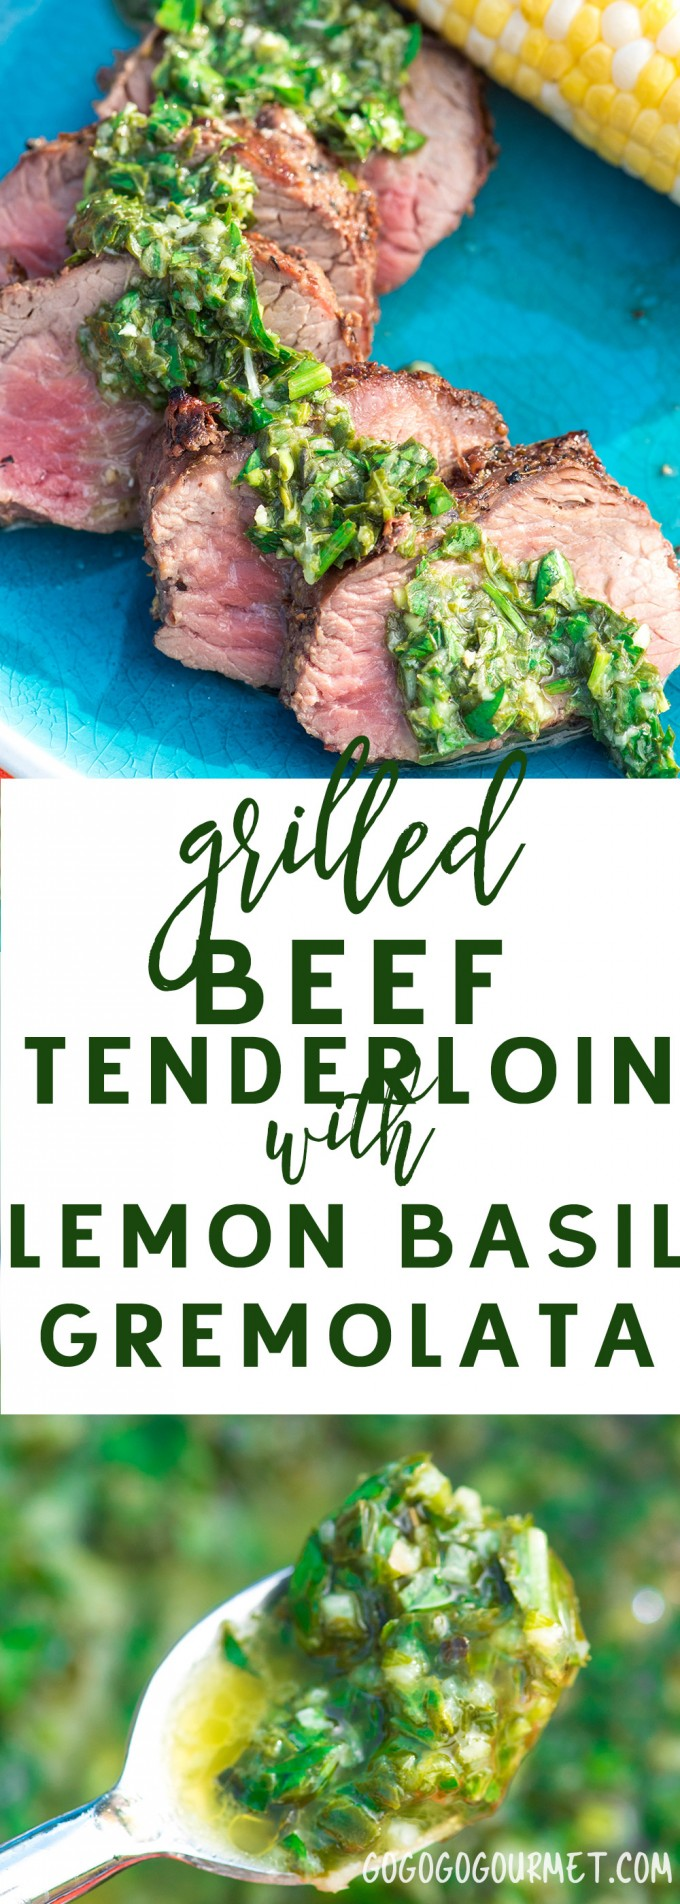 This Lemon Basil Gremolata is the perfect summer topping for grilled meat, fish, poultry or vegetables! Fast and easy, with no big kitchen equipment required. via @gogogogourmet